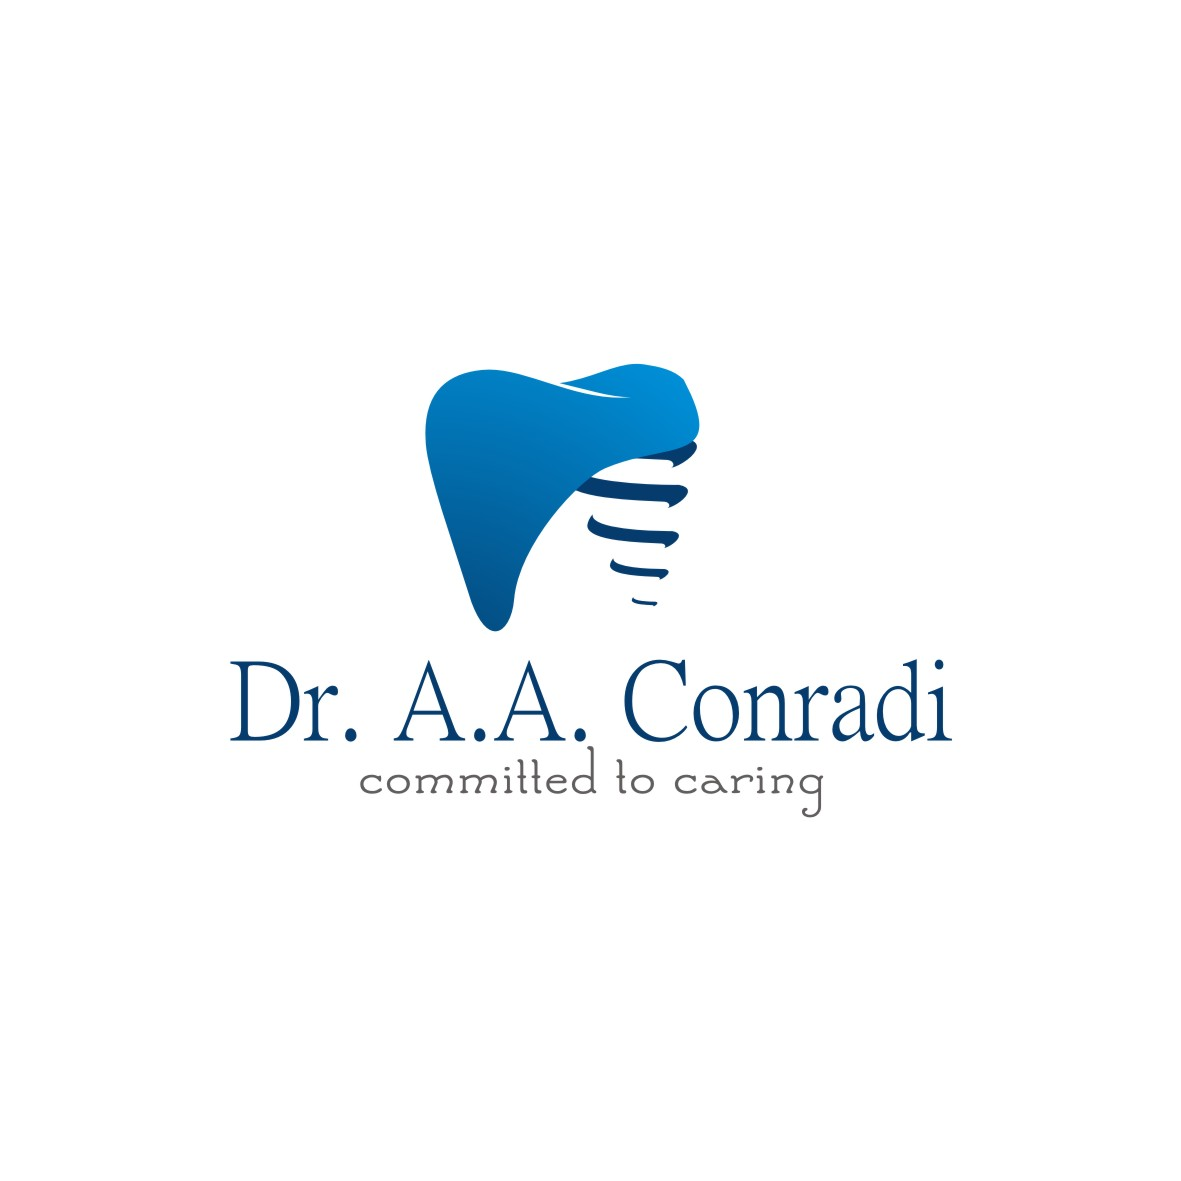 Build Your Own Dentistry Logo Online  Free 3D Dentist